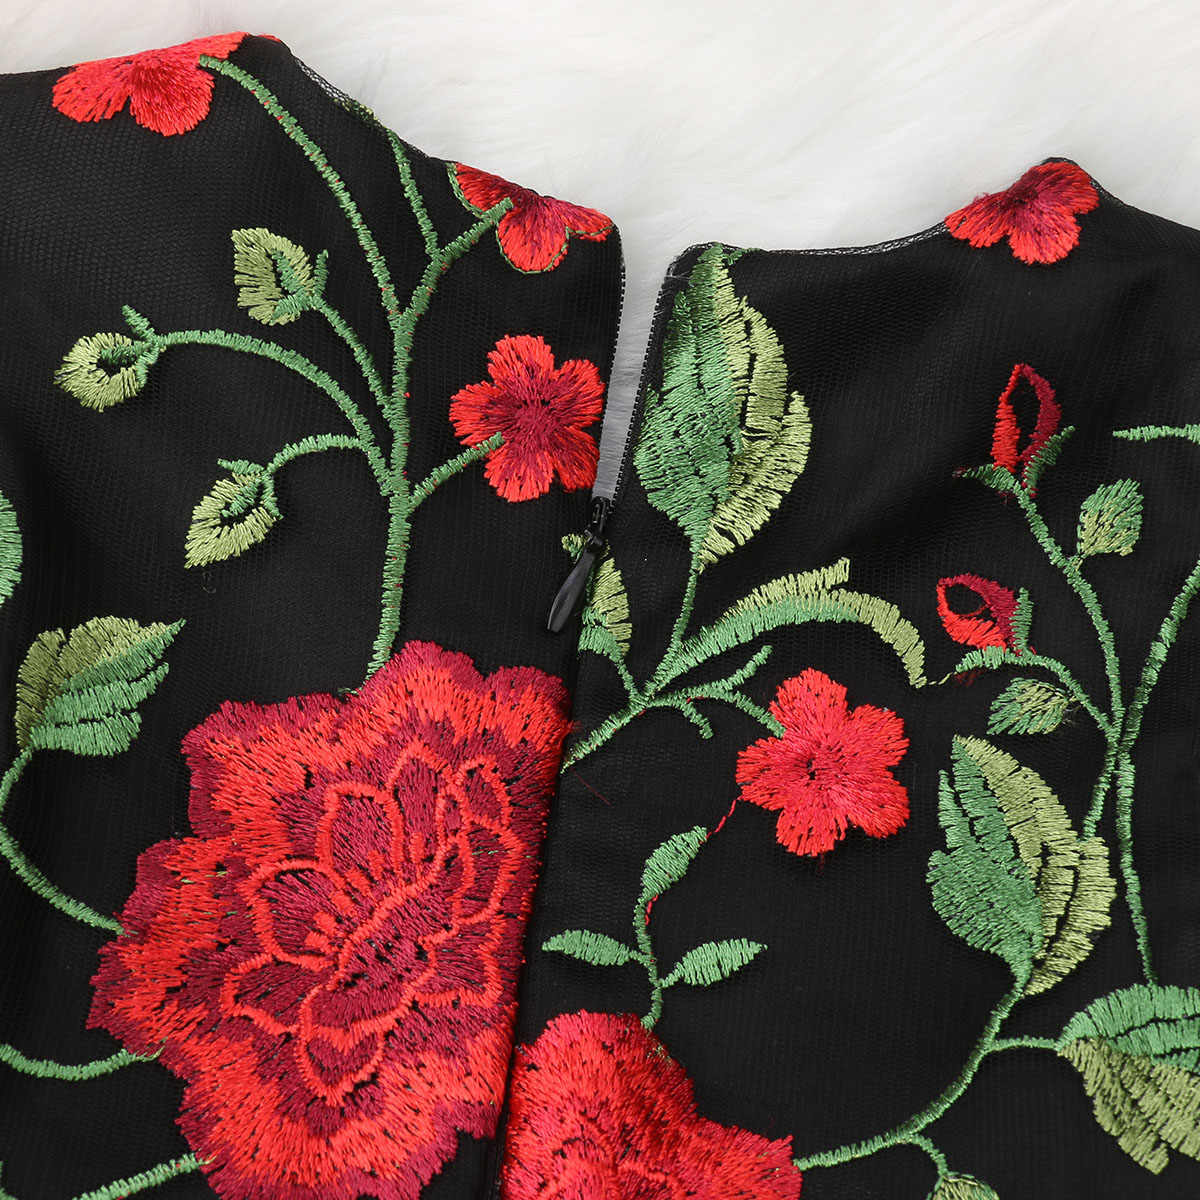 6M-5T Toddler Embroidered Rose Flower Kids Dress Baby Girls Pageant Bridesmaid Princess Formal Dress